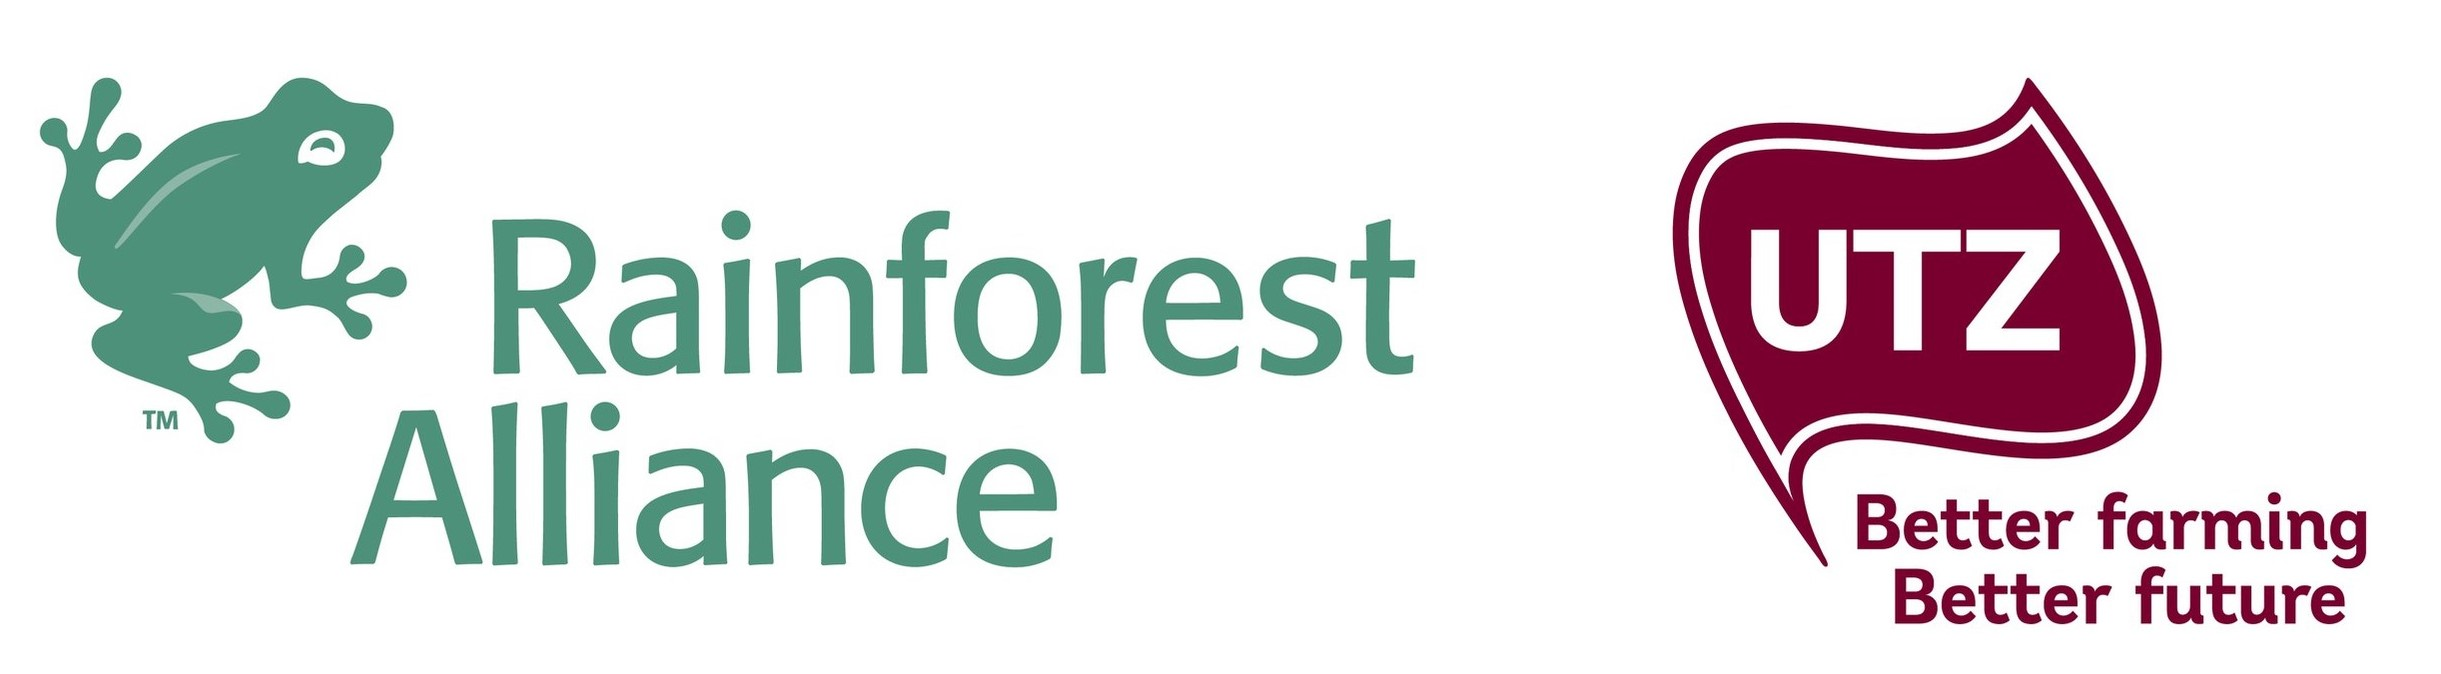 It sees social, economic, and environmental. The Rainforest Alliance And Utz Merge Into A New Stronger Organization